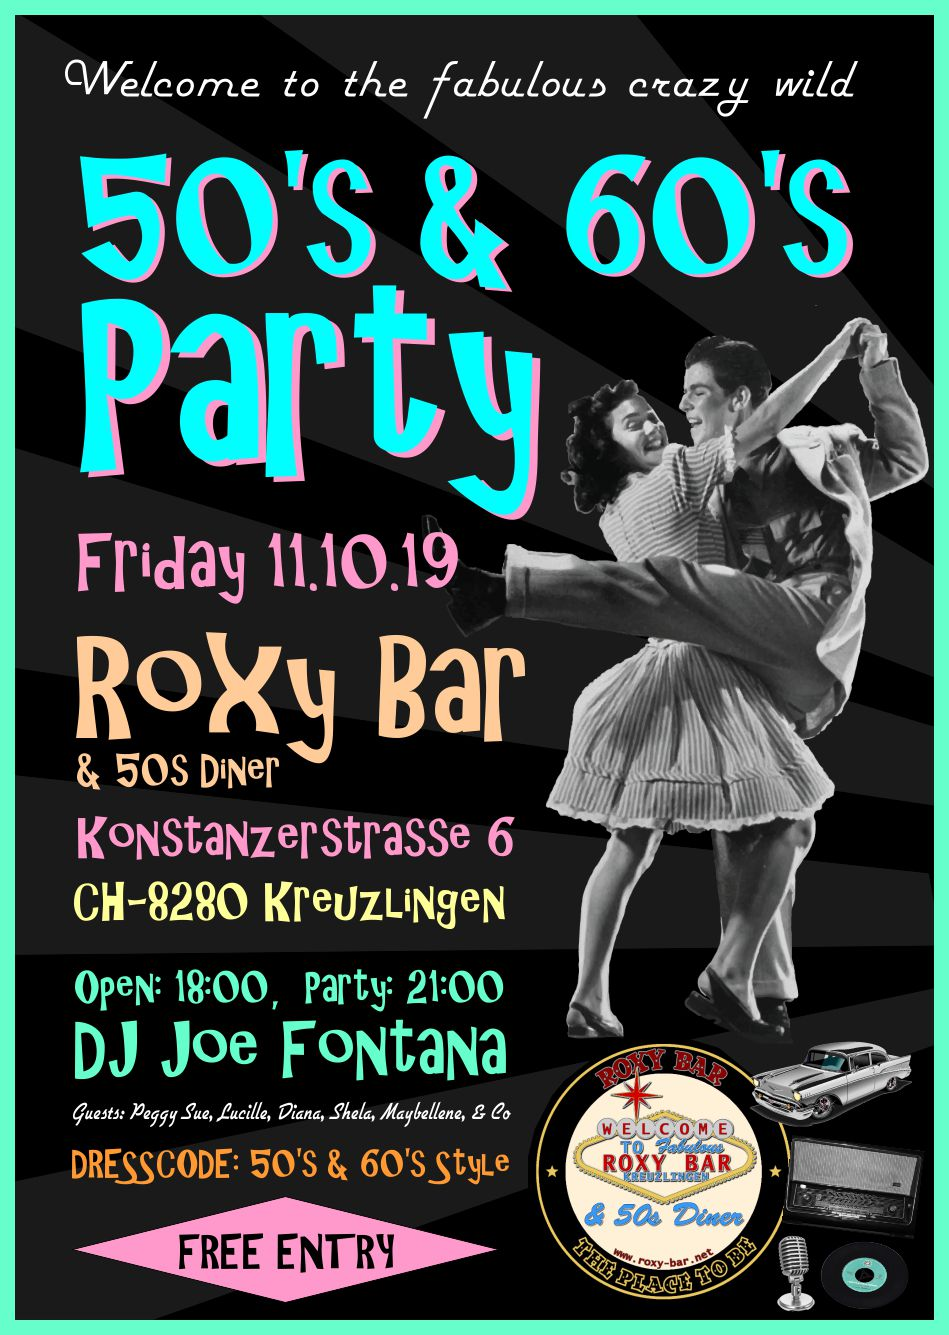 50's & 60's Party